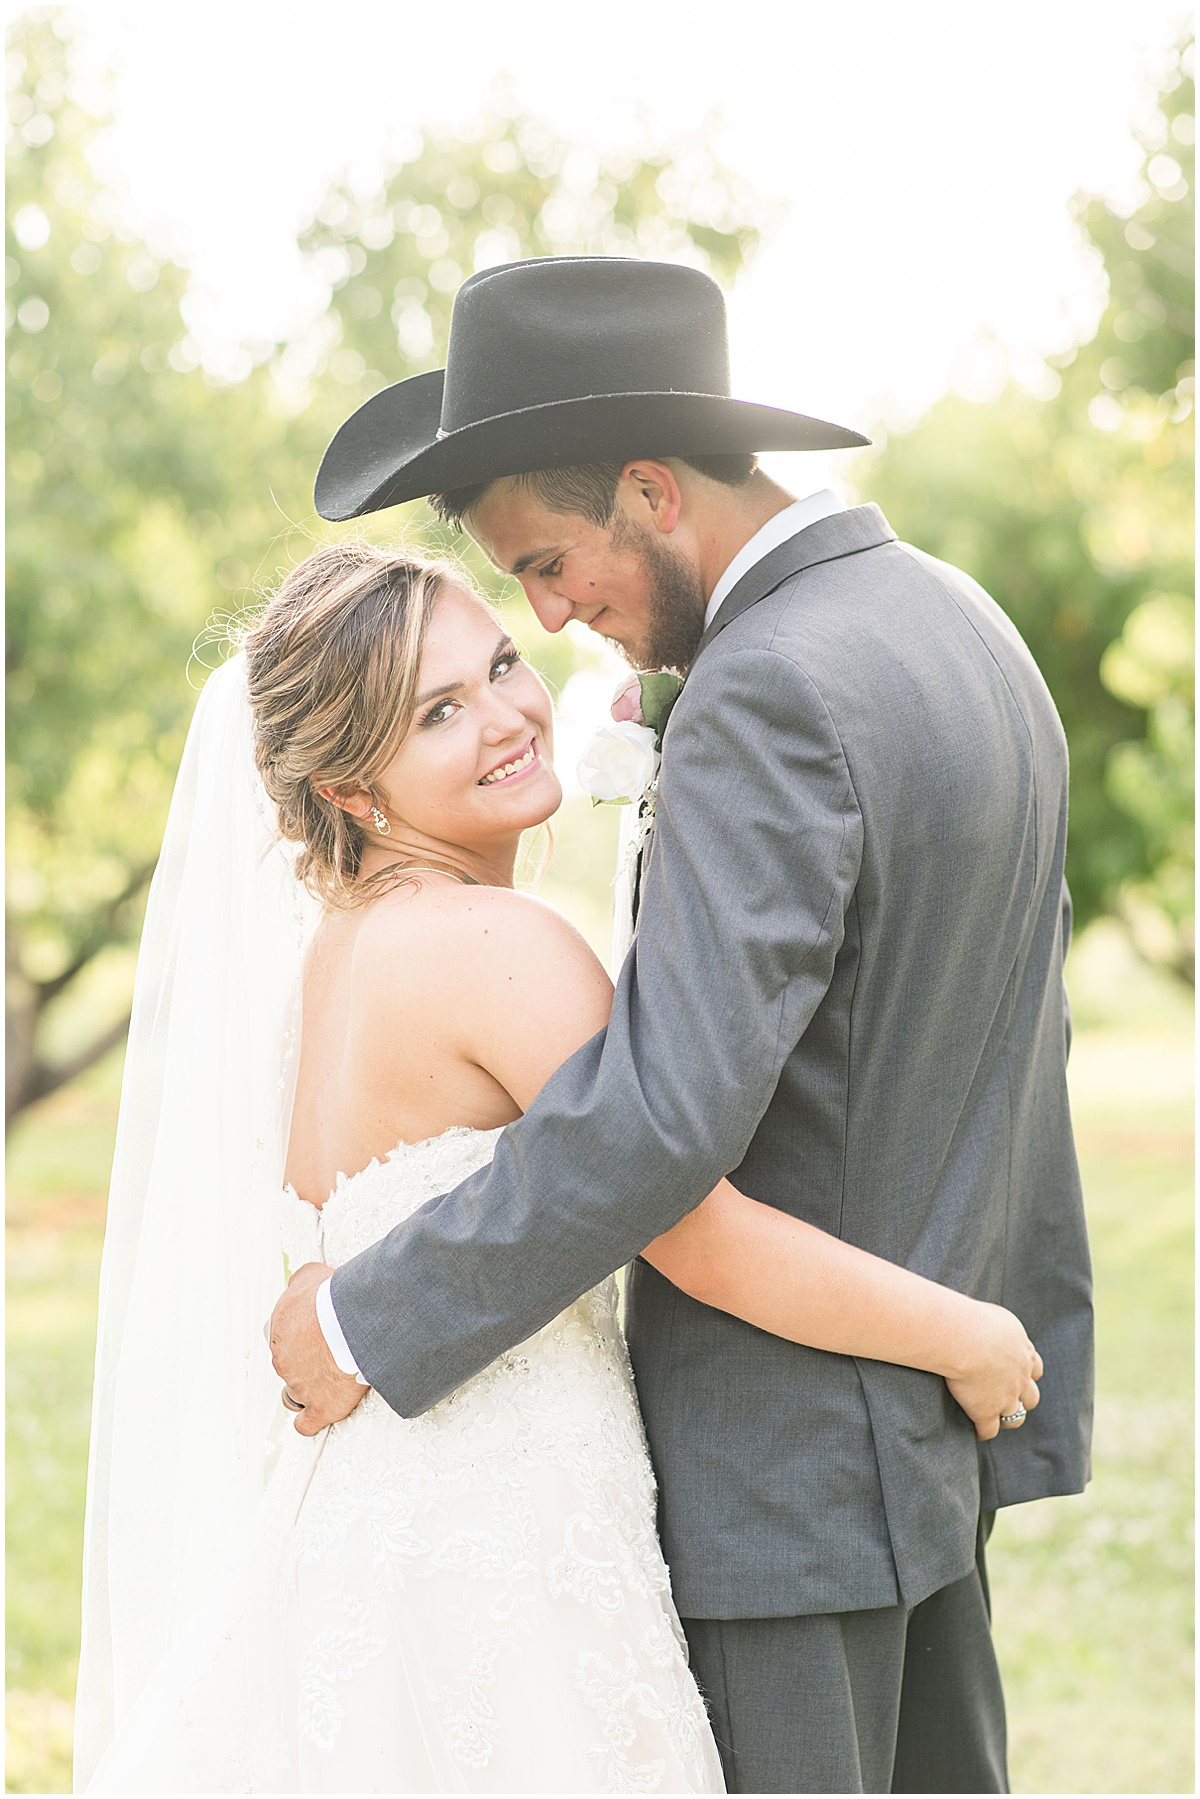 Just married photos after Wea Creek Orchard wedding in Lafayette, Indiana